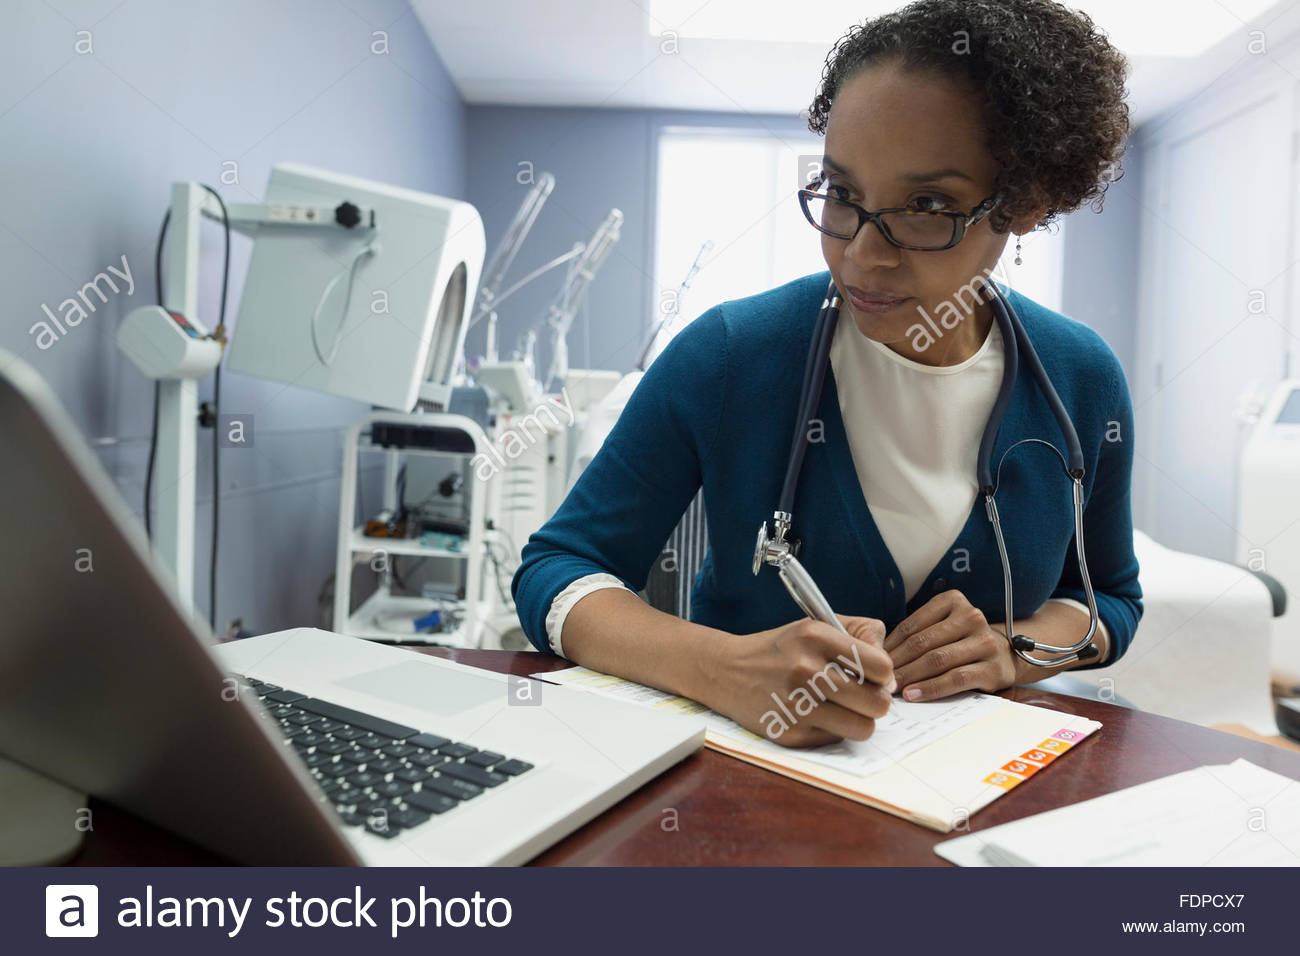 Doctor at laptop taking notes on medical record - Stock Image